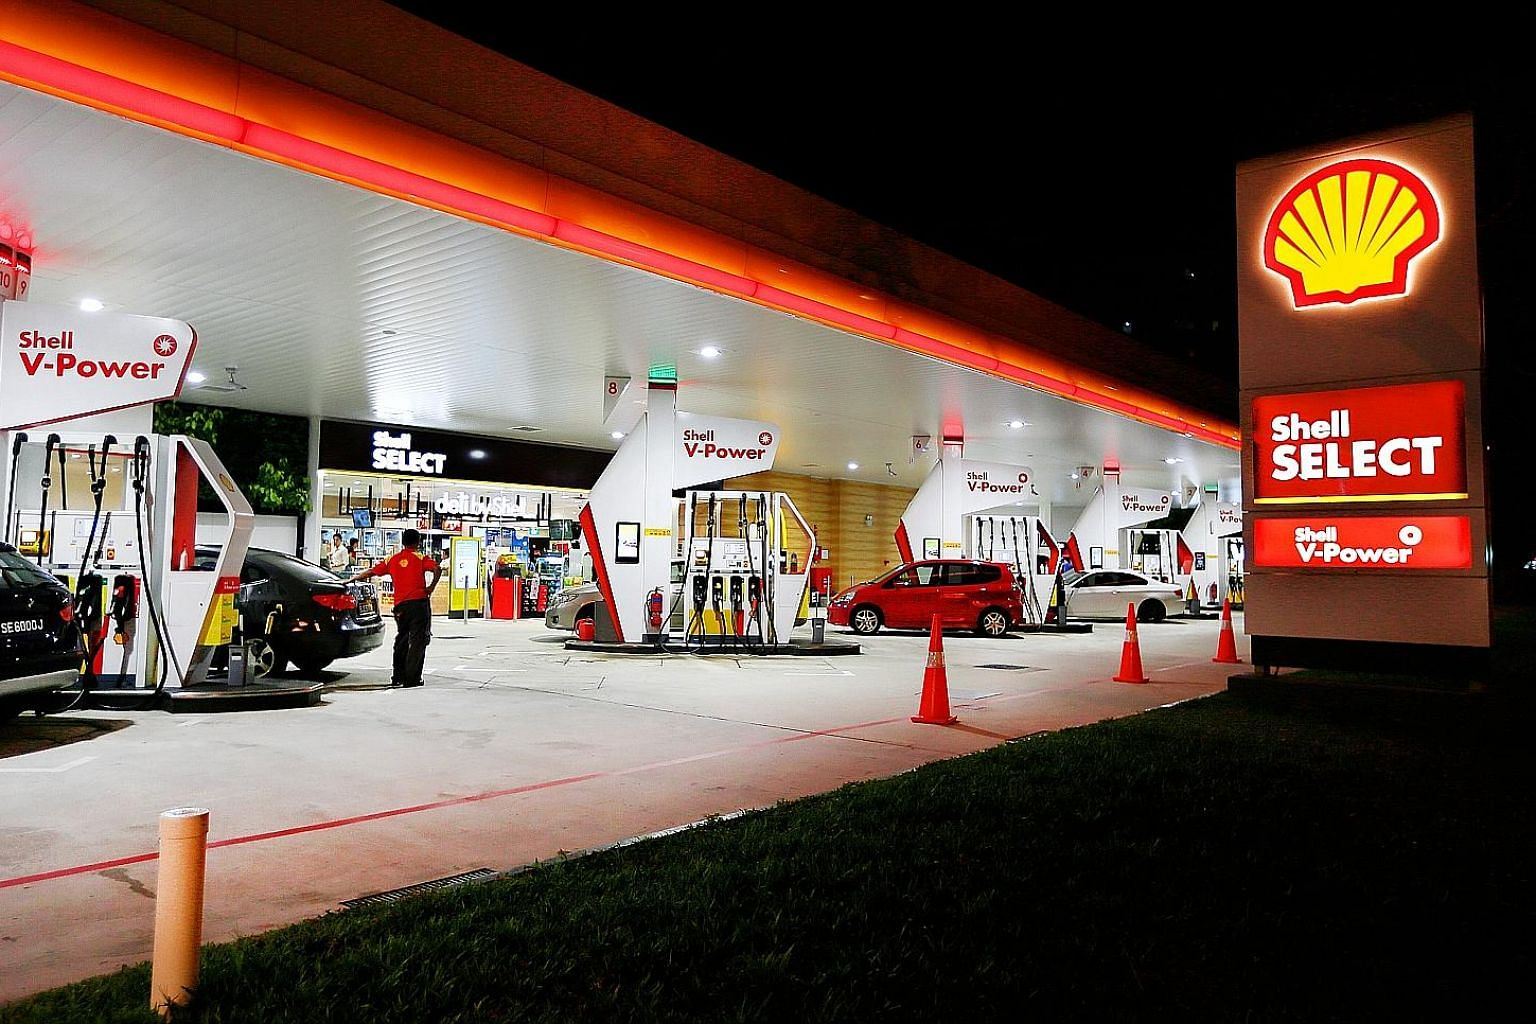 7-Eleven has stores in Shell petrol stations across the island under its partnership with the oil company, but that arrangement ends this year. Shell intends to run its own convenience stores within the stations and the rebranding exercise has alread